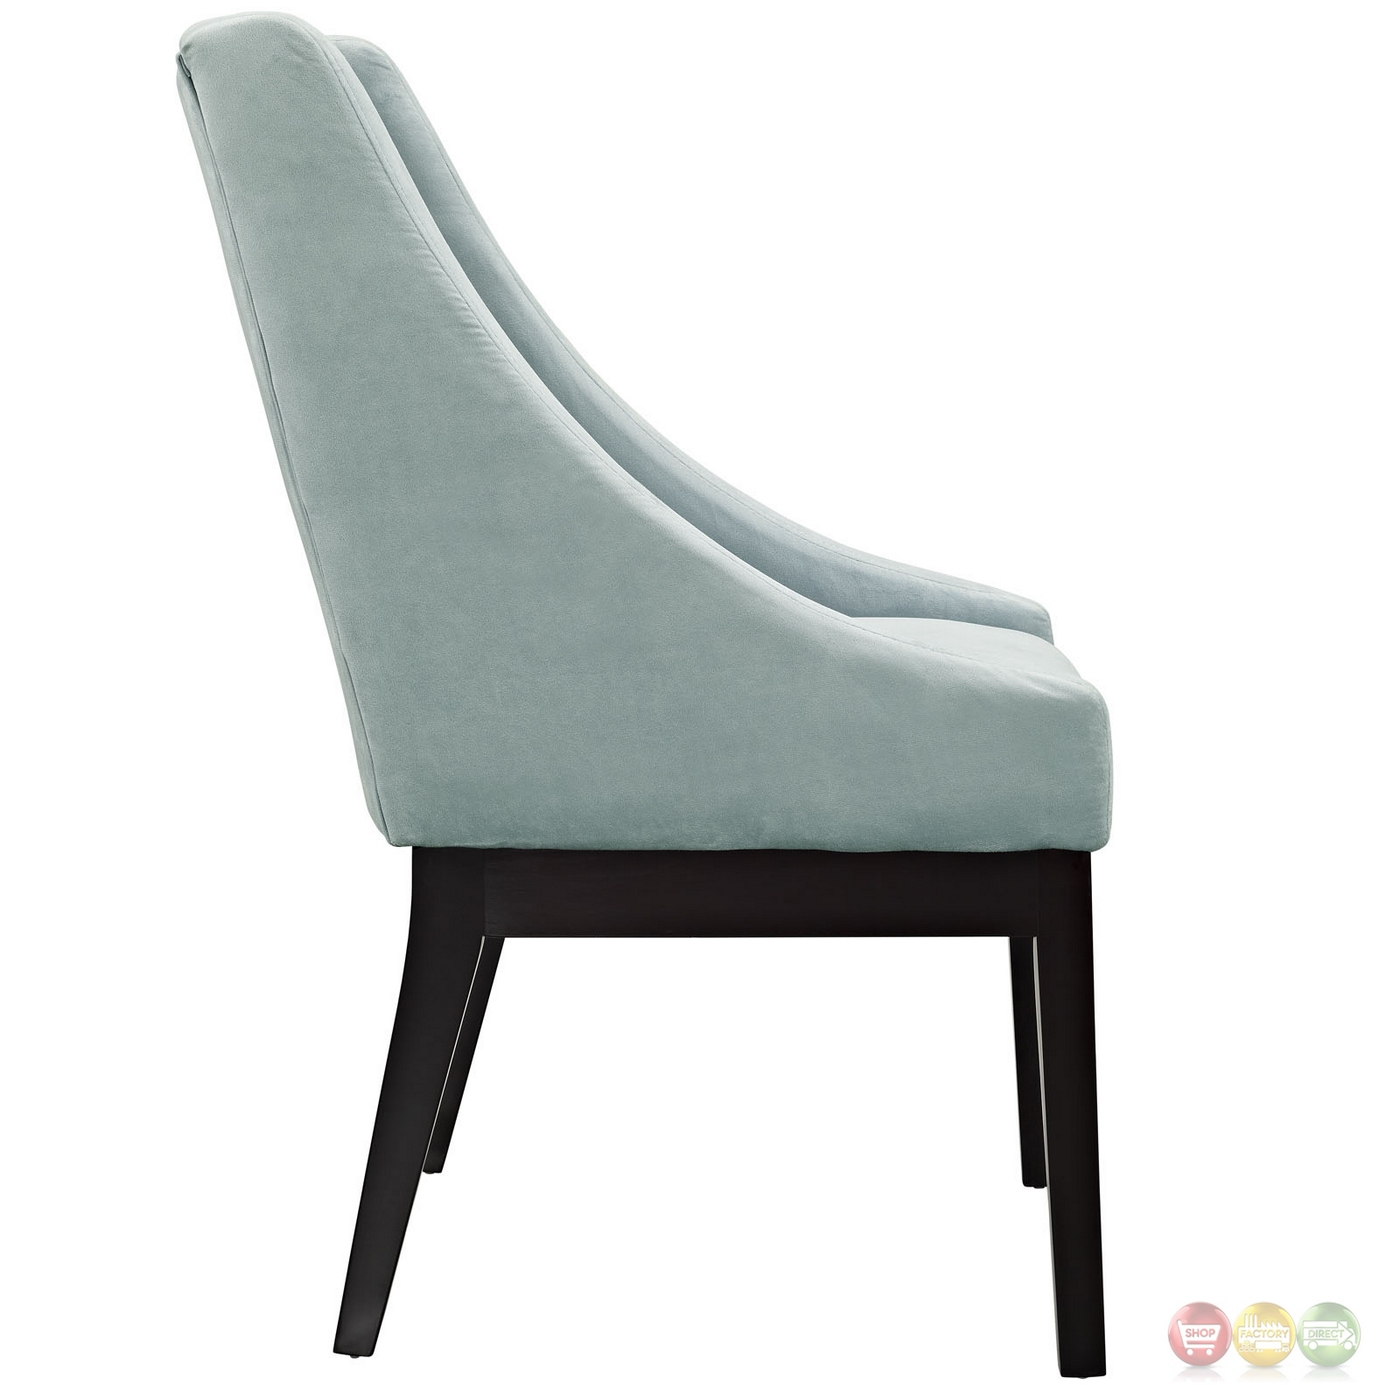 Light Blue Dining Chairs Tide Modern Suede Like Upholstered Dining Side Chair W